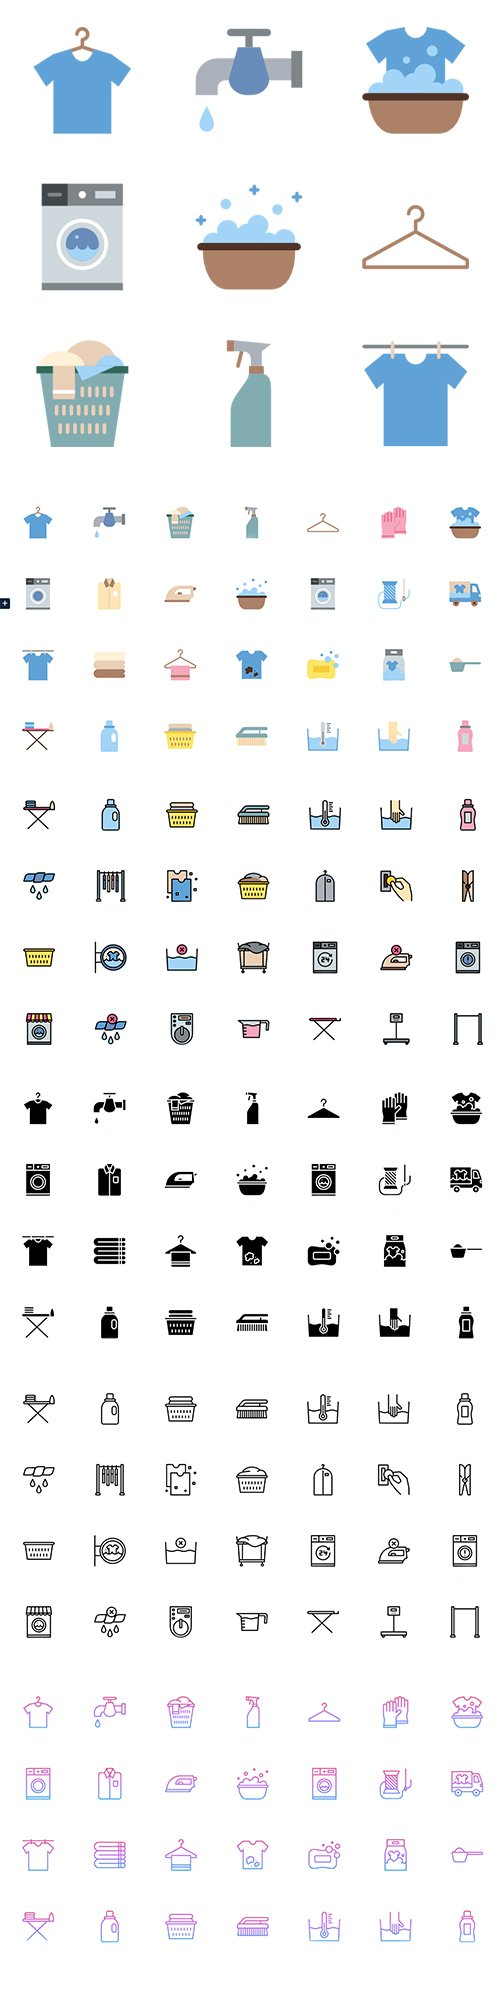 250 Laundry Vector Icon Pack (Lineal Color, Flat, Outline, Gradient, Glyph)